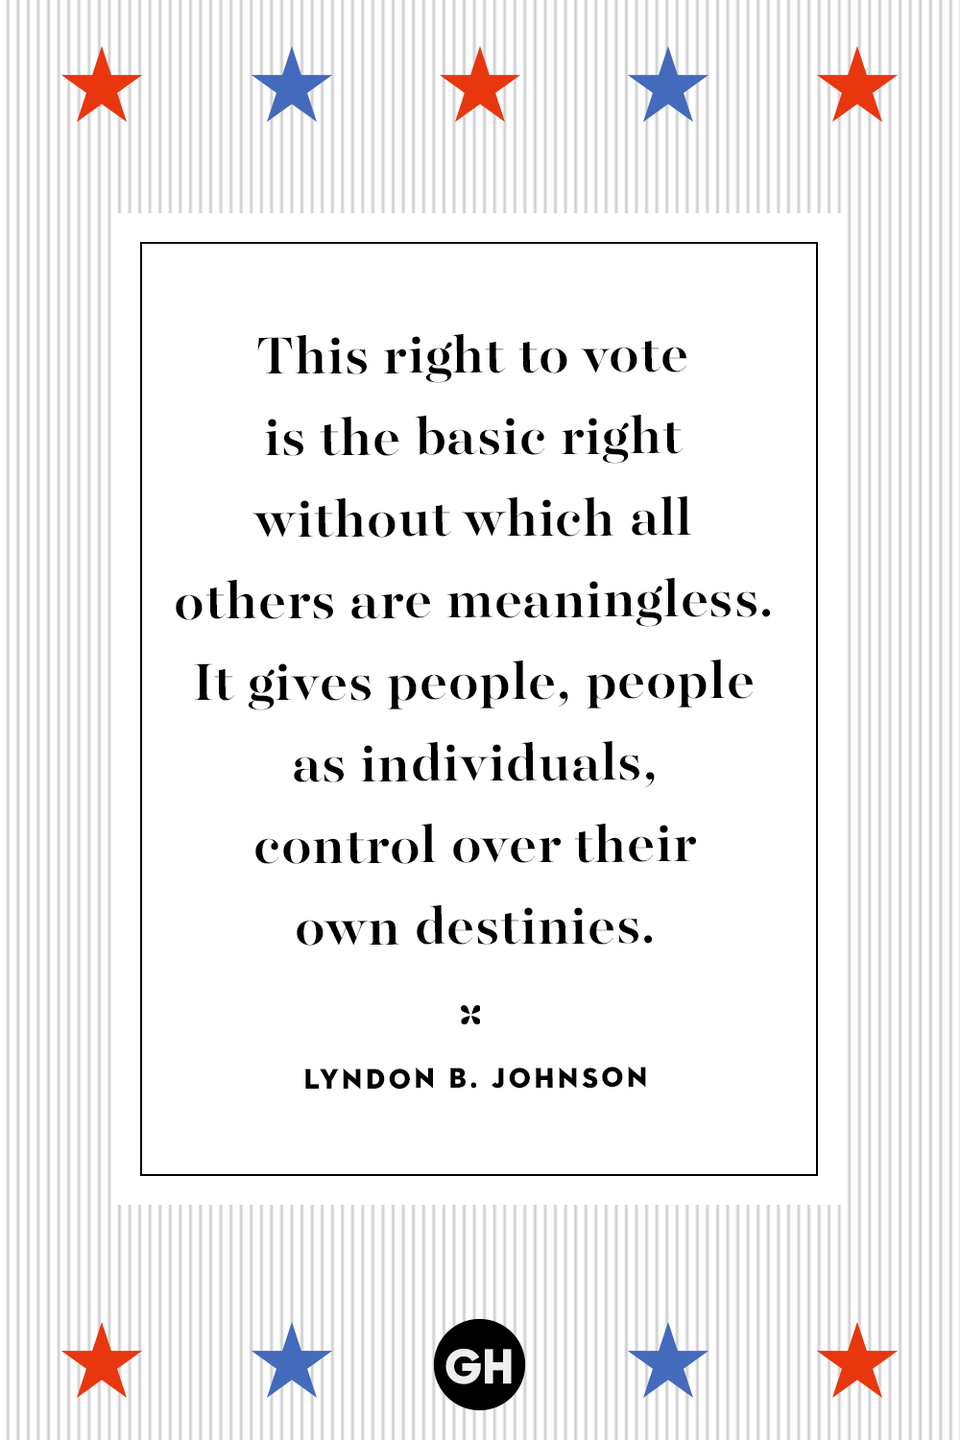 <p>This right to vote is the basic right without which all others are meaningless. It gives people, people as individuals, control over their own destinies.</p>